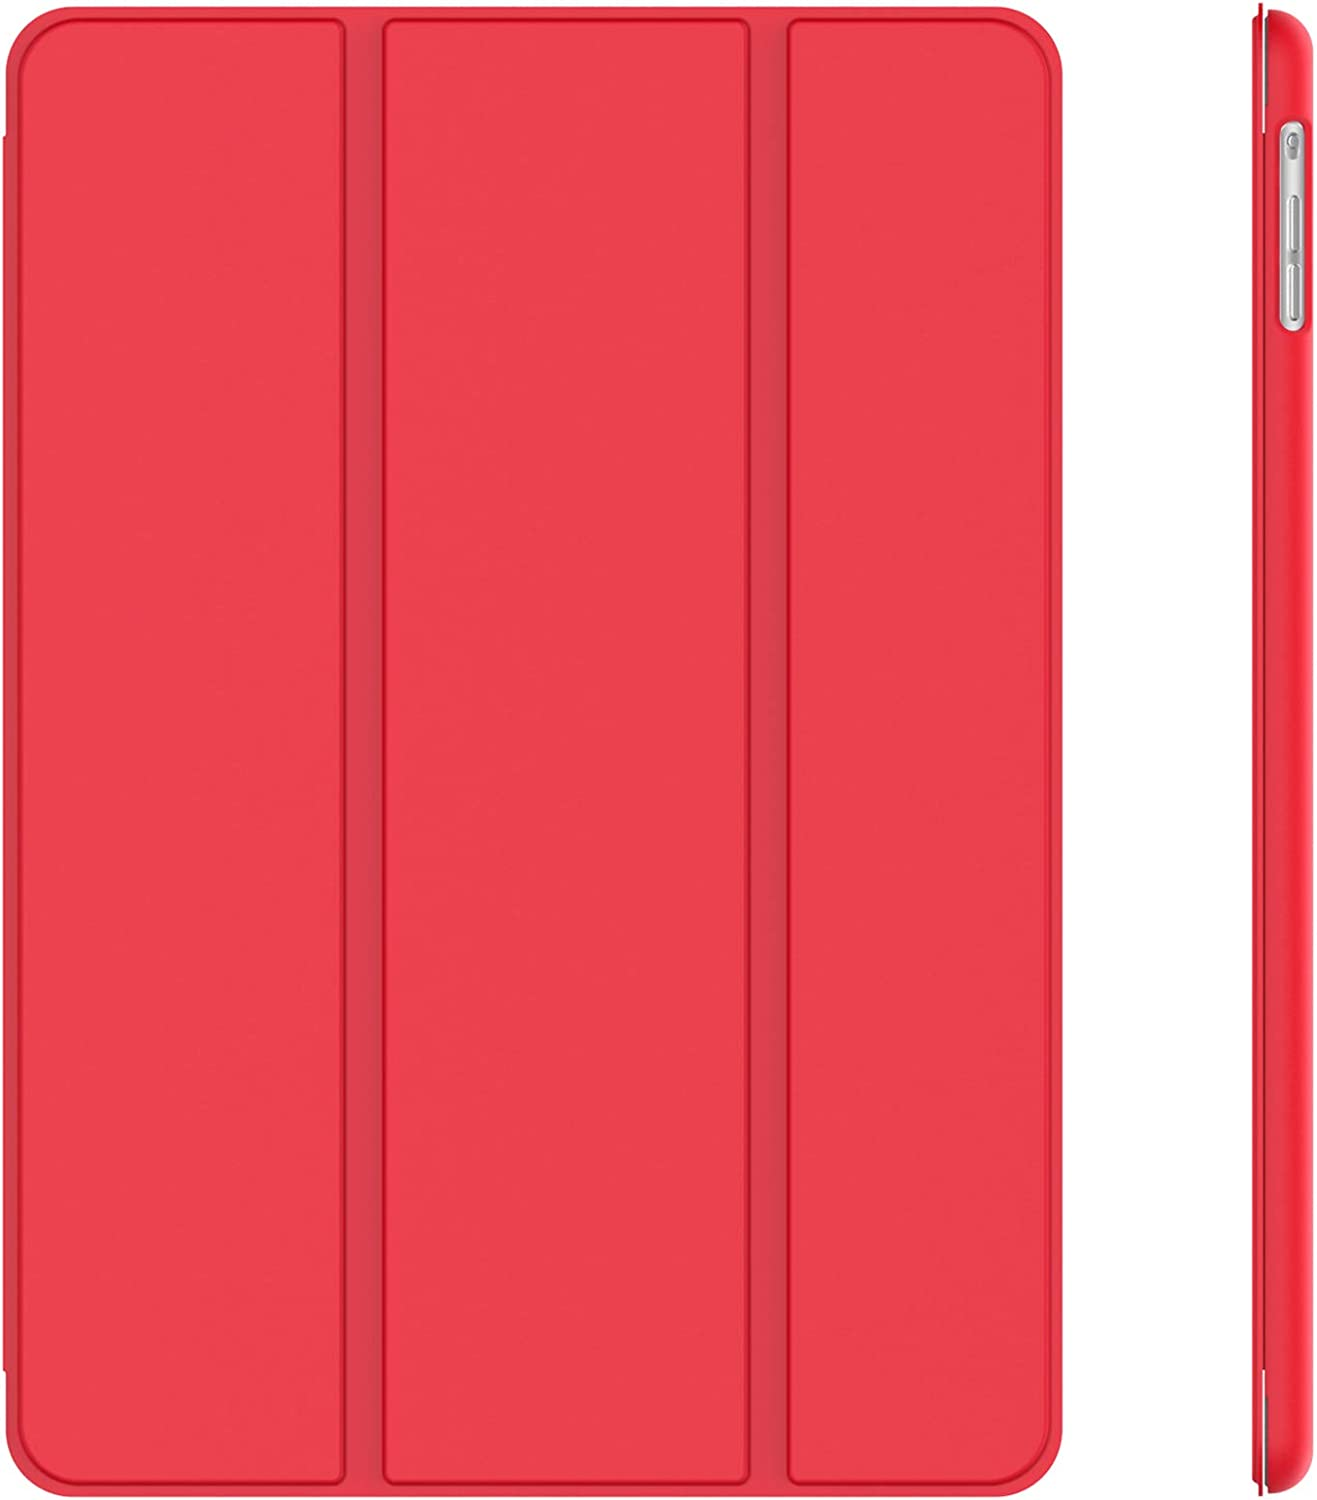 JETech Case for iPad Air 1st Edition (NOT for iPad Air 2), Smart Cover with Auto Wake/Sleep, Red